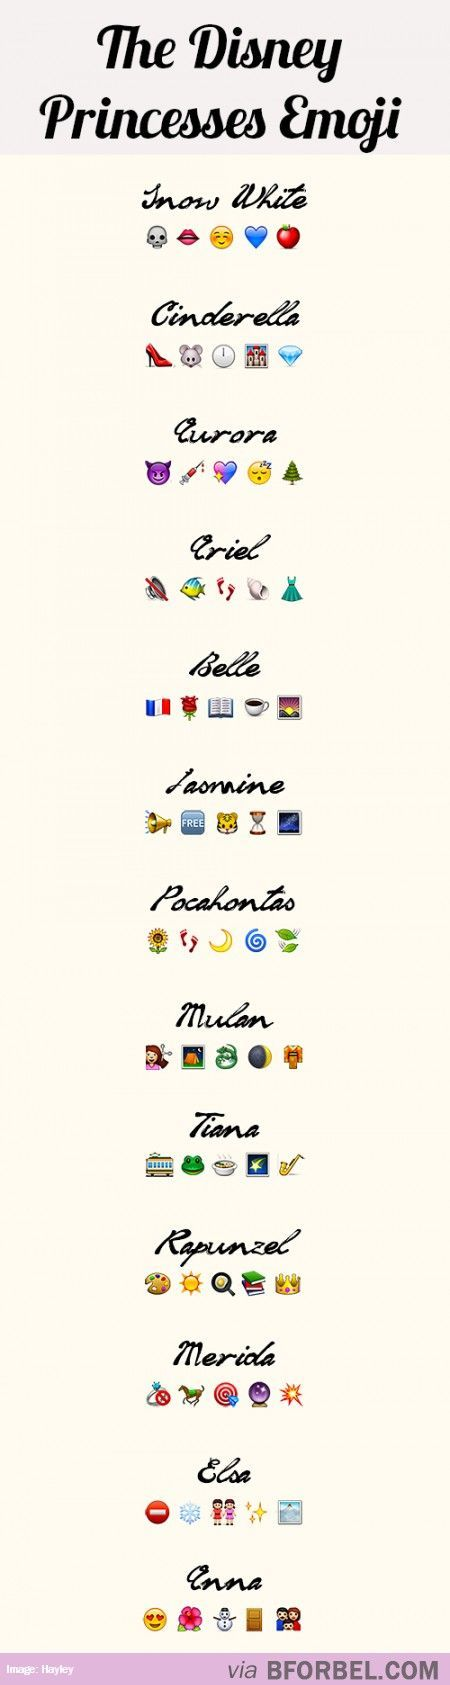 13 Disney Princesses Described By Emojis…